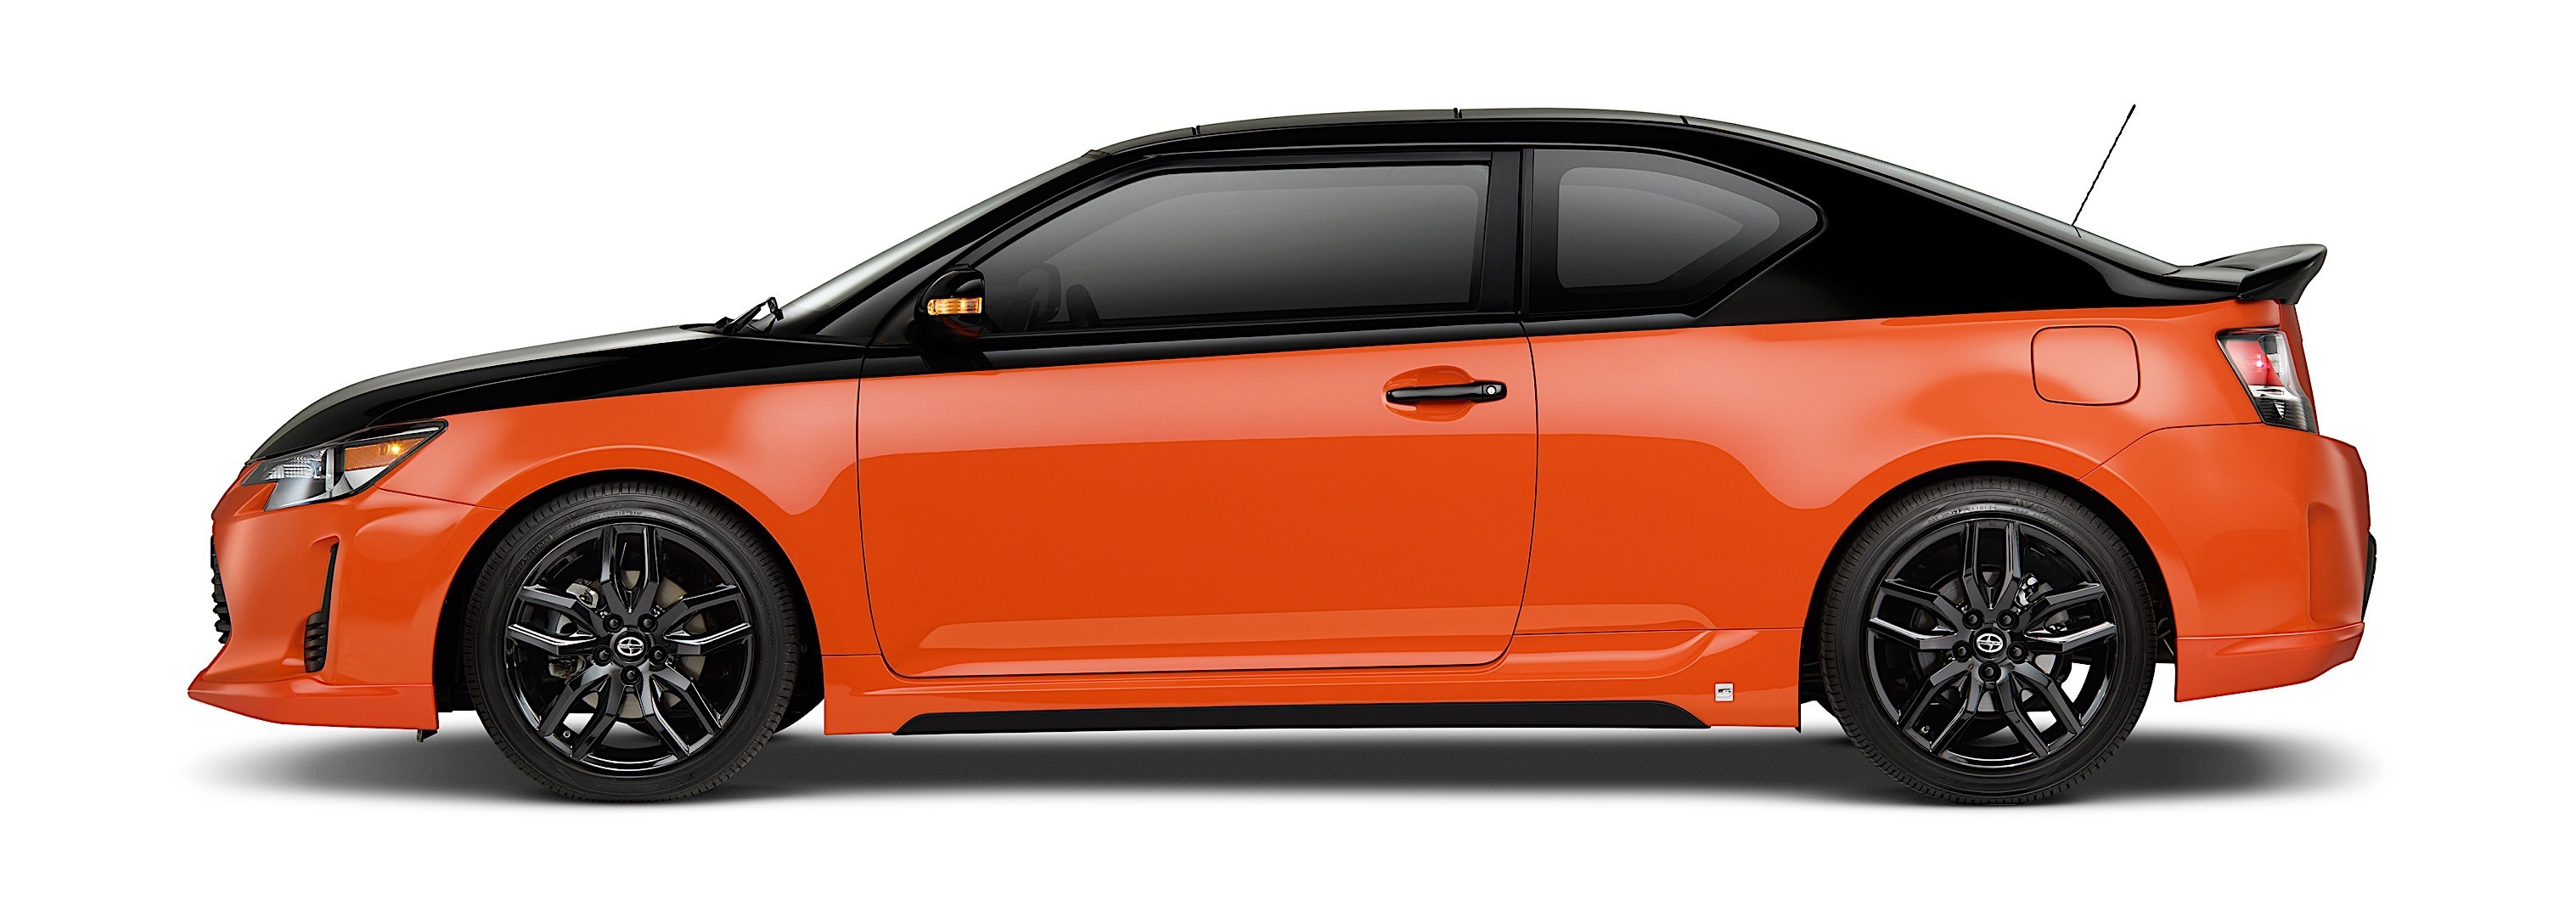 SCION tC specs & photos - 2013, 2014, 2015, 2016 ...